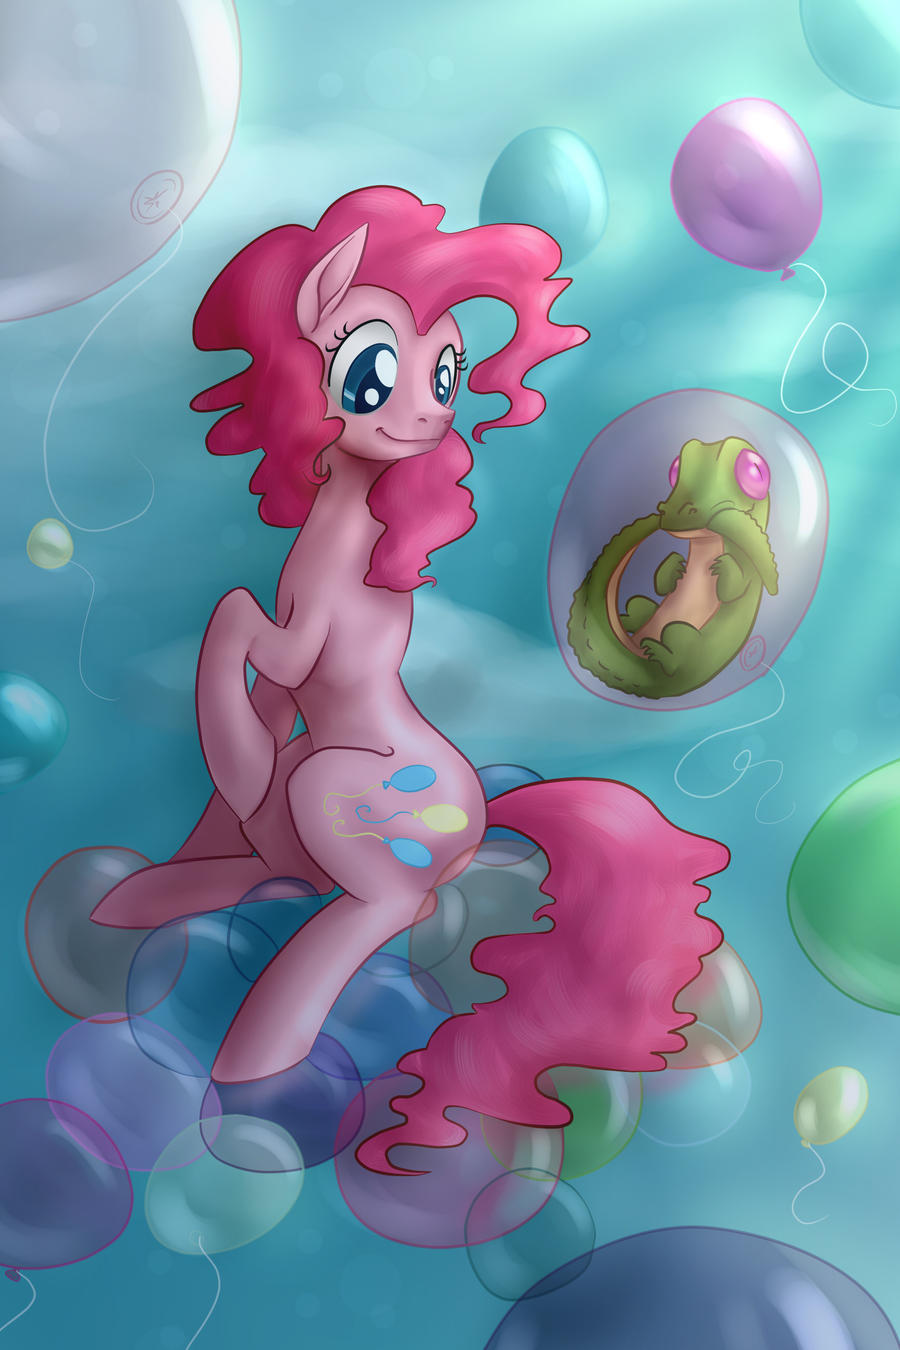 Balloon Party by Tzelly-El